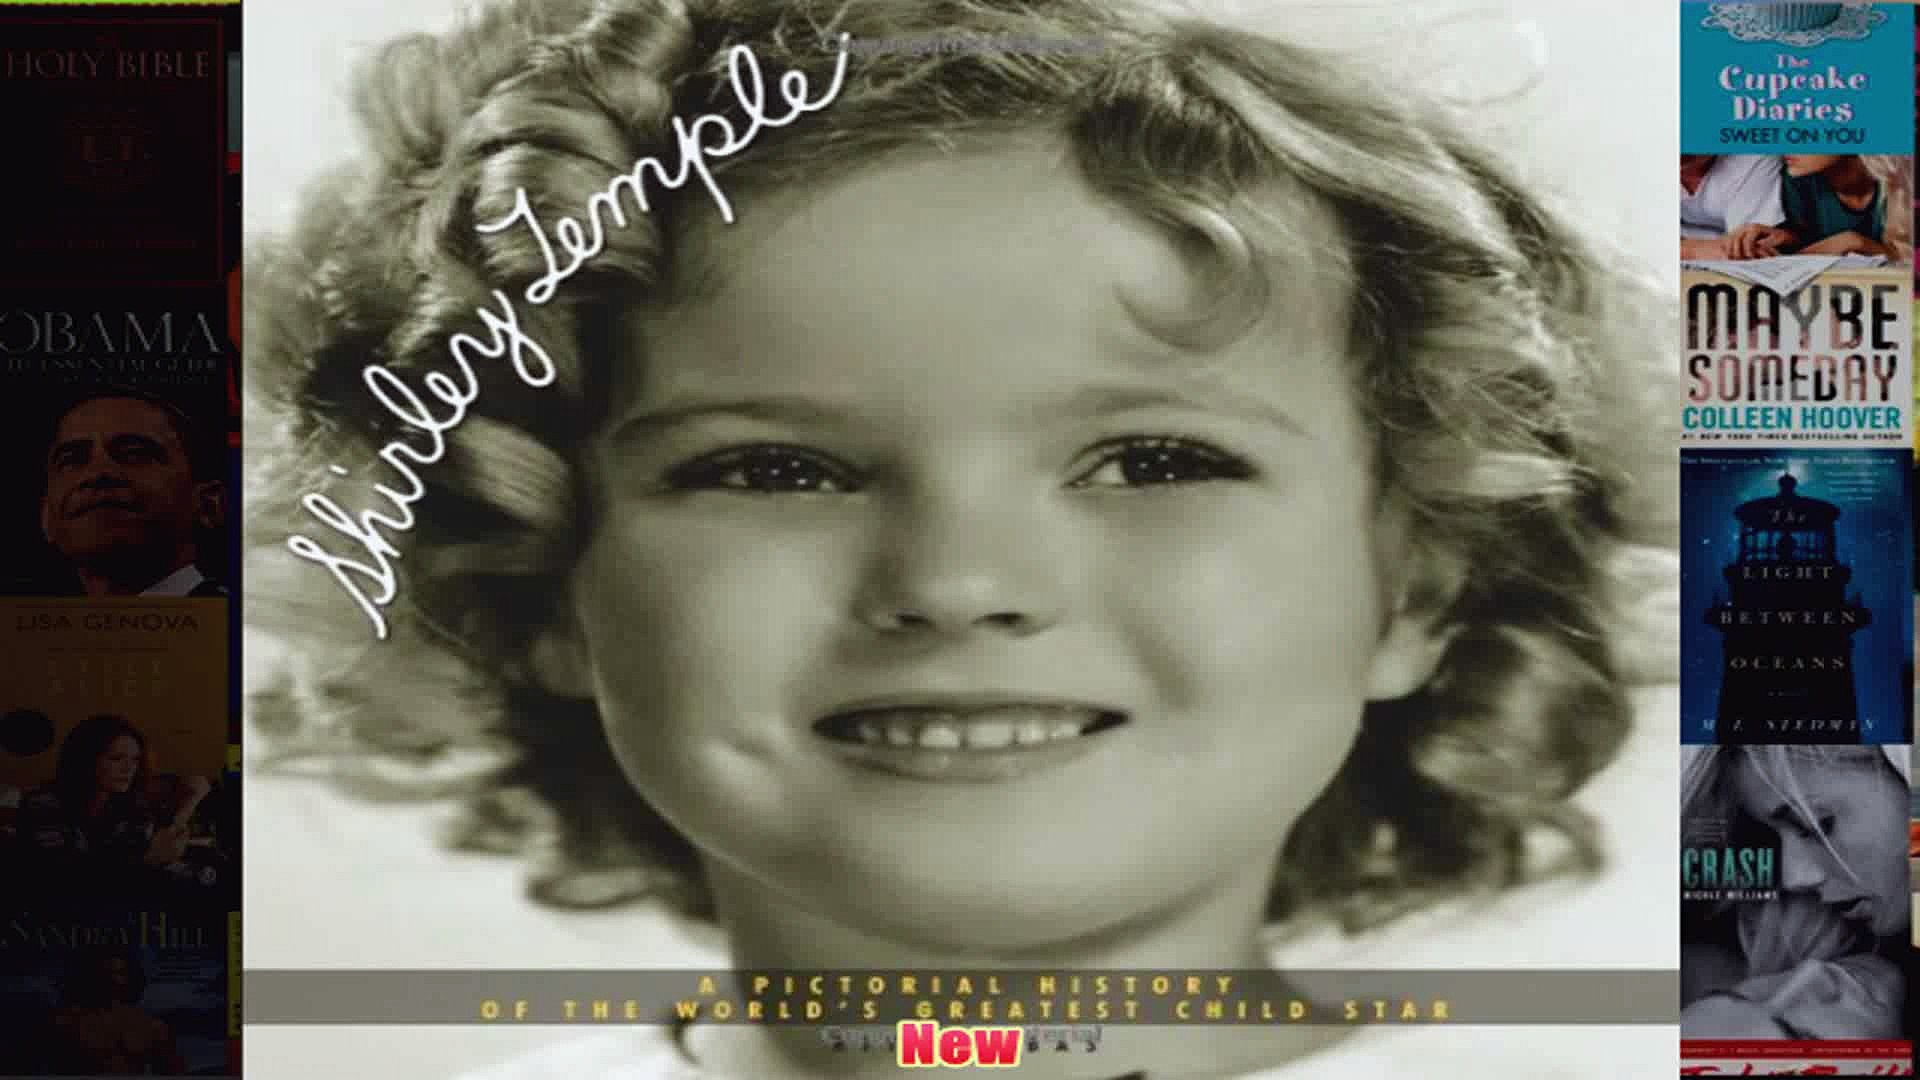 Shirley Temple A Pictorial History of the Worlds Greatest Child Star